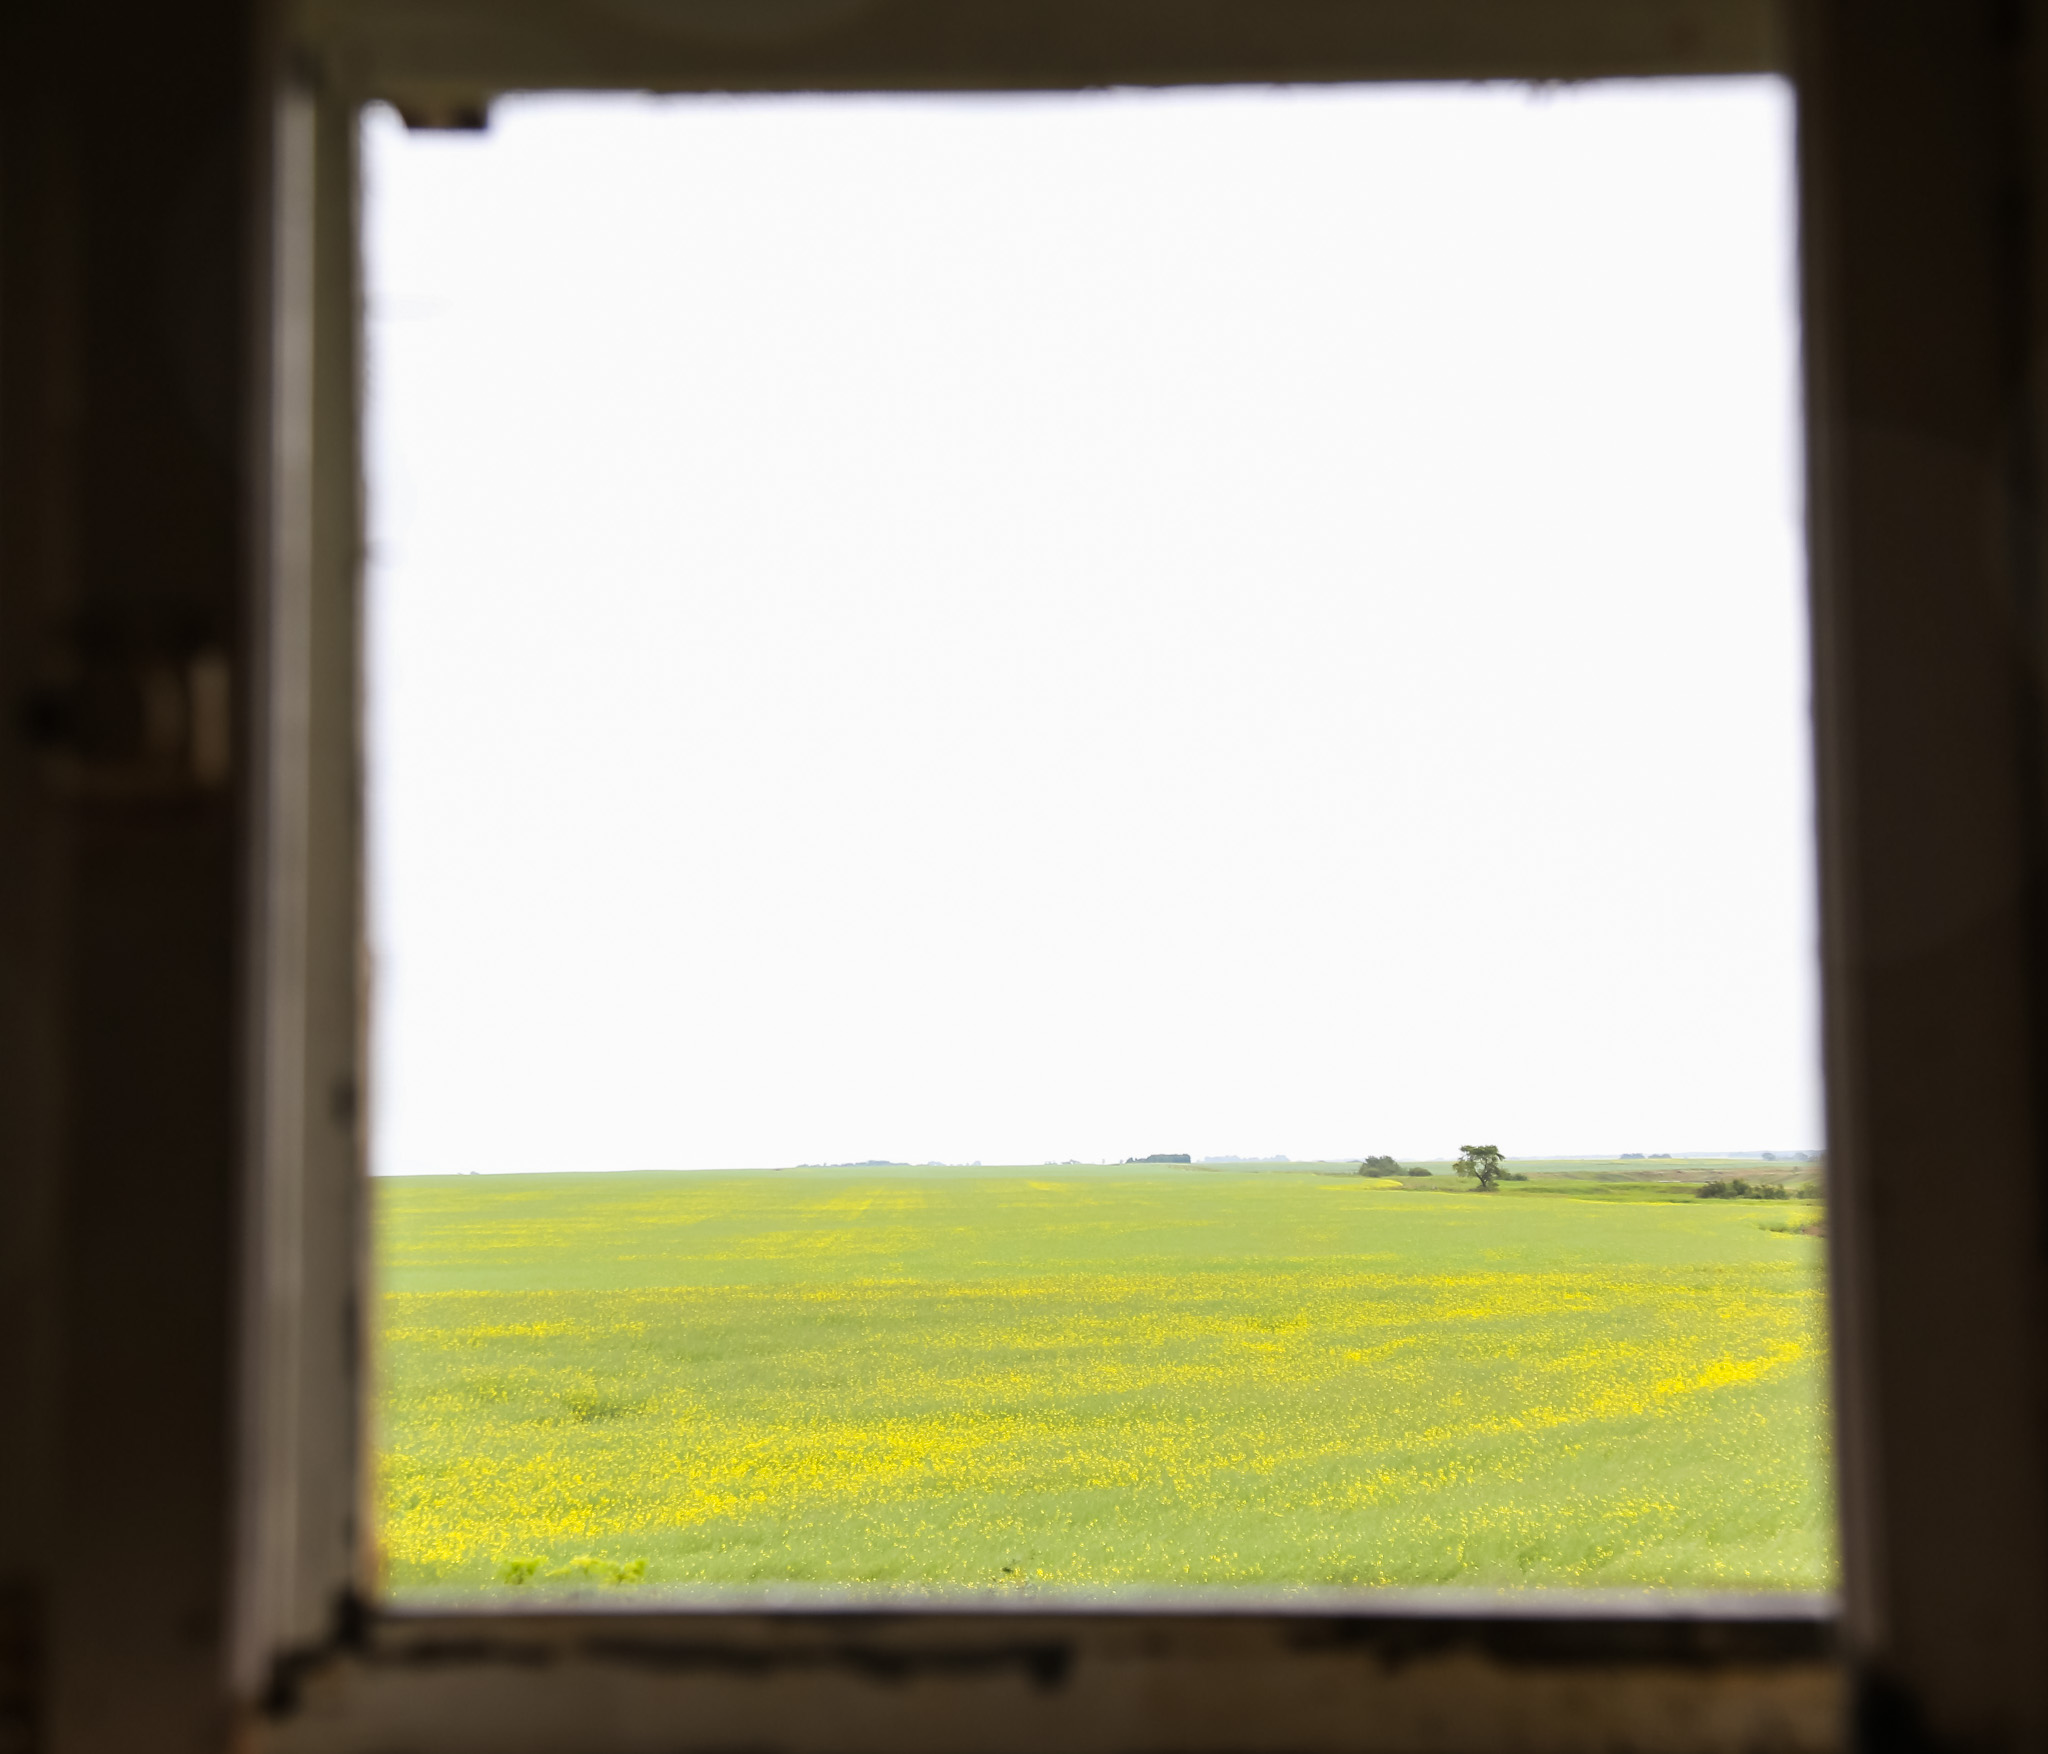 Another room with a view of the surrounding Canola fields